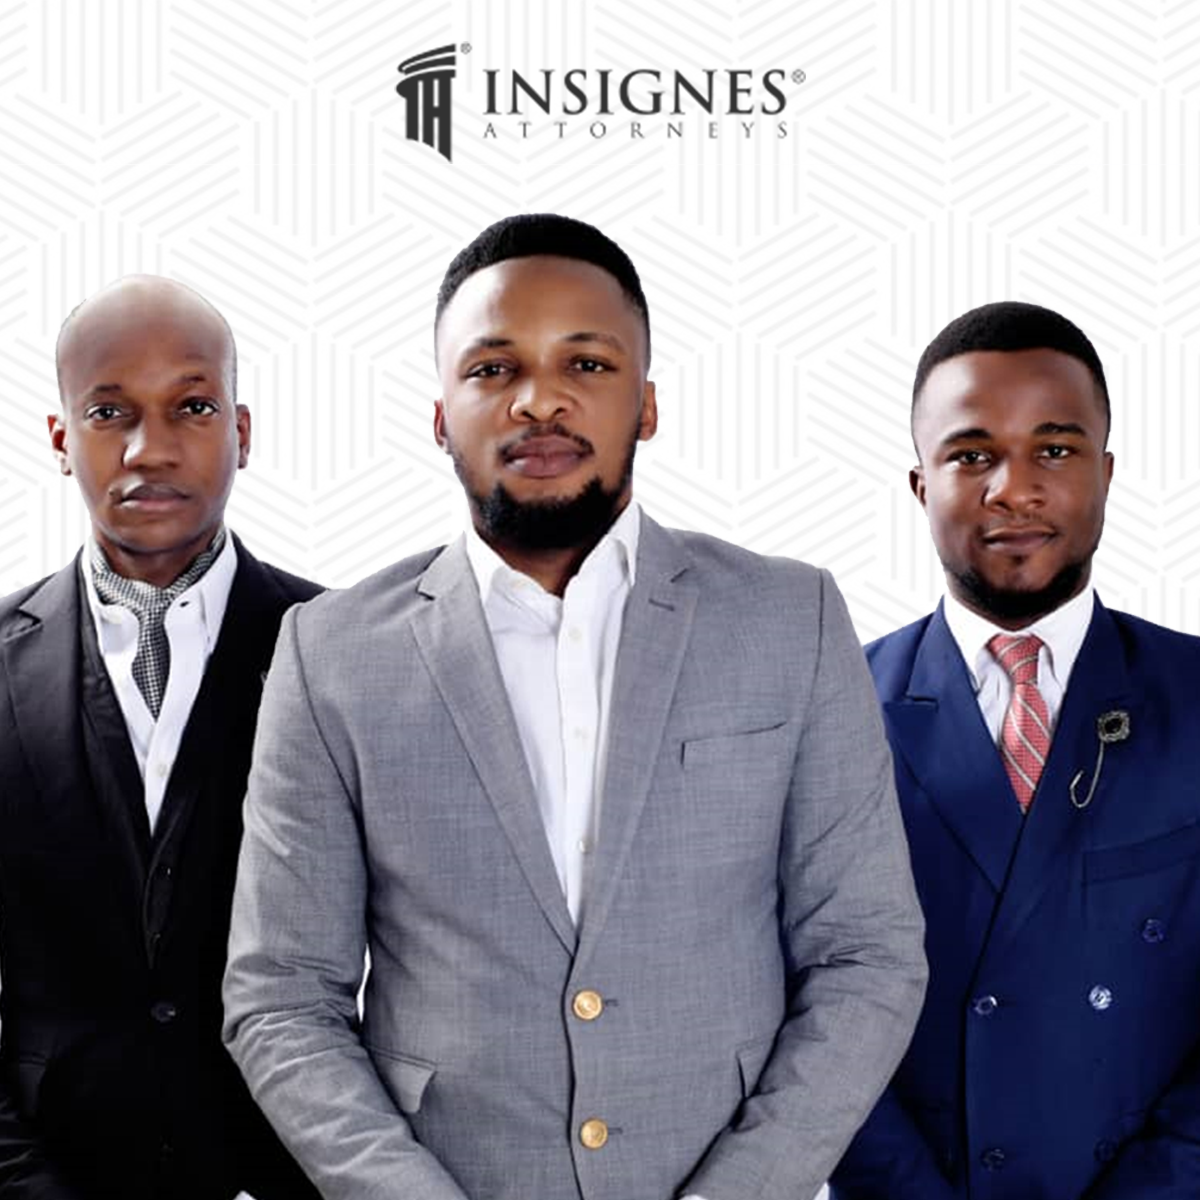 Insignes Attorneys: Every creator needs an entertainment attorney.